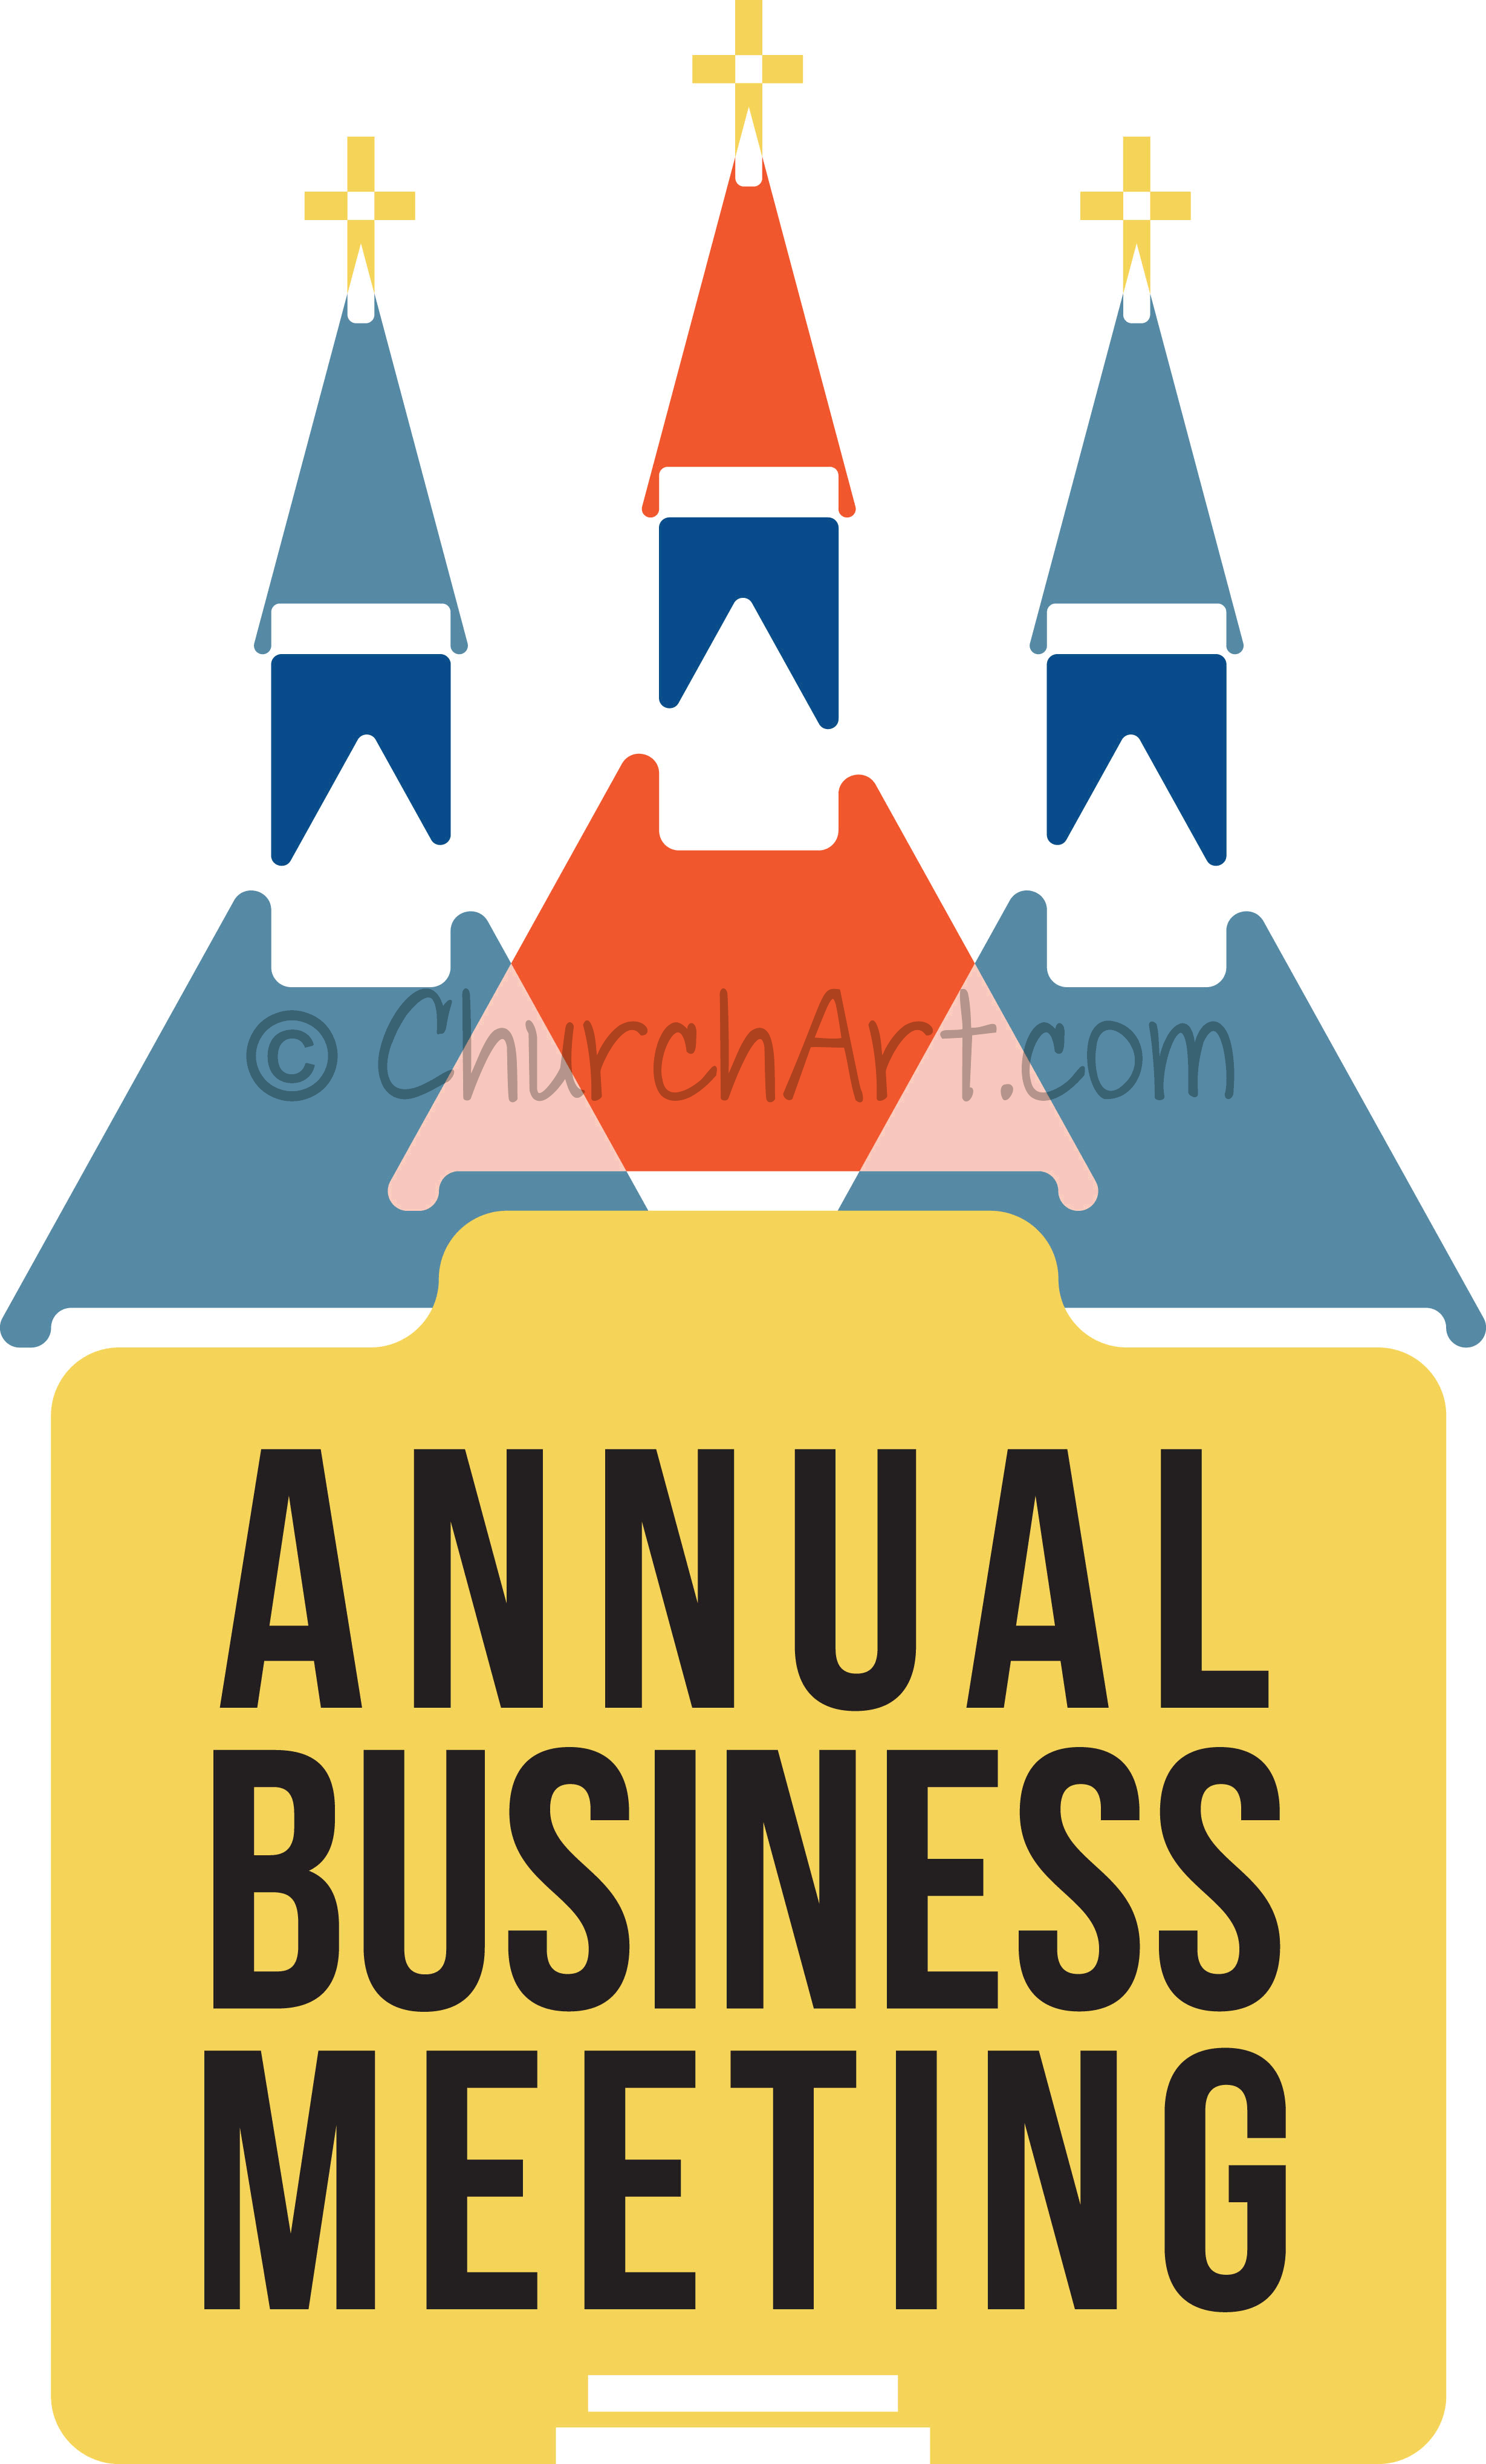 Clipart image for Church Annual Business Meeting featuring church with cross and steeple